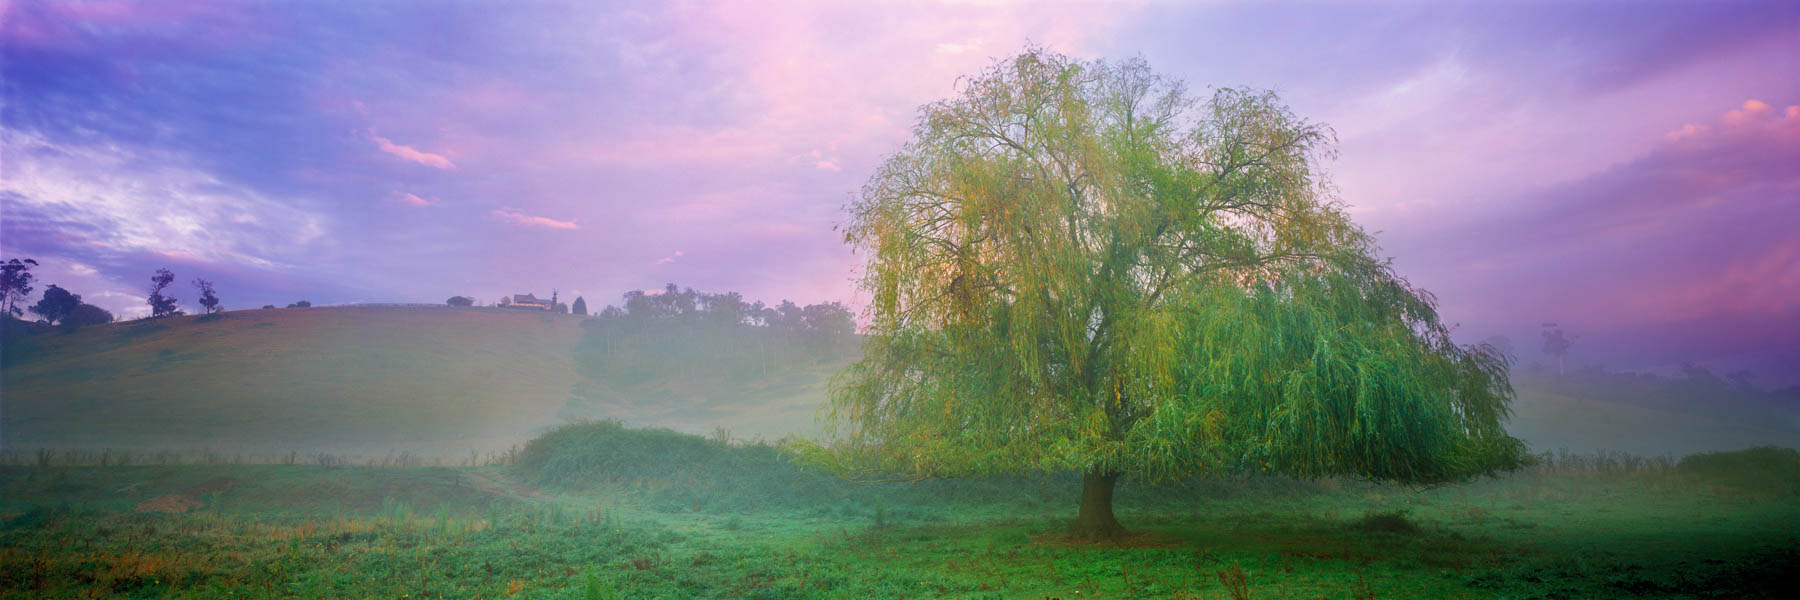 Early morning mist swirling around a weeping willow, Yarra Valley, Victoria, Australia.